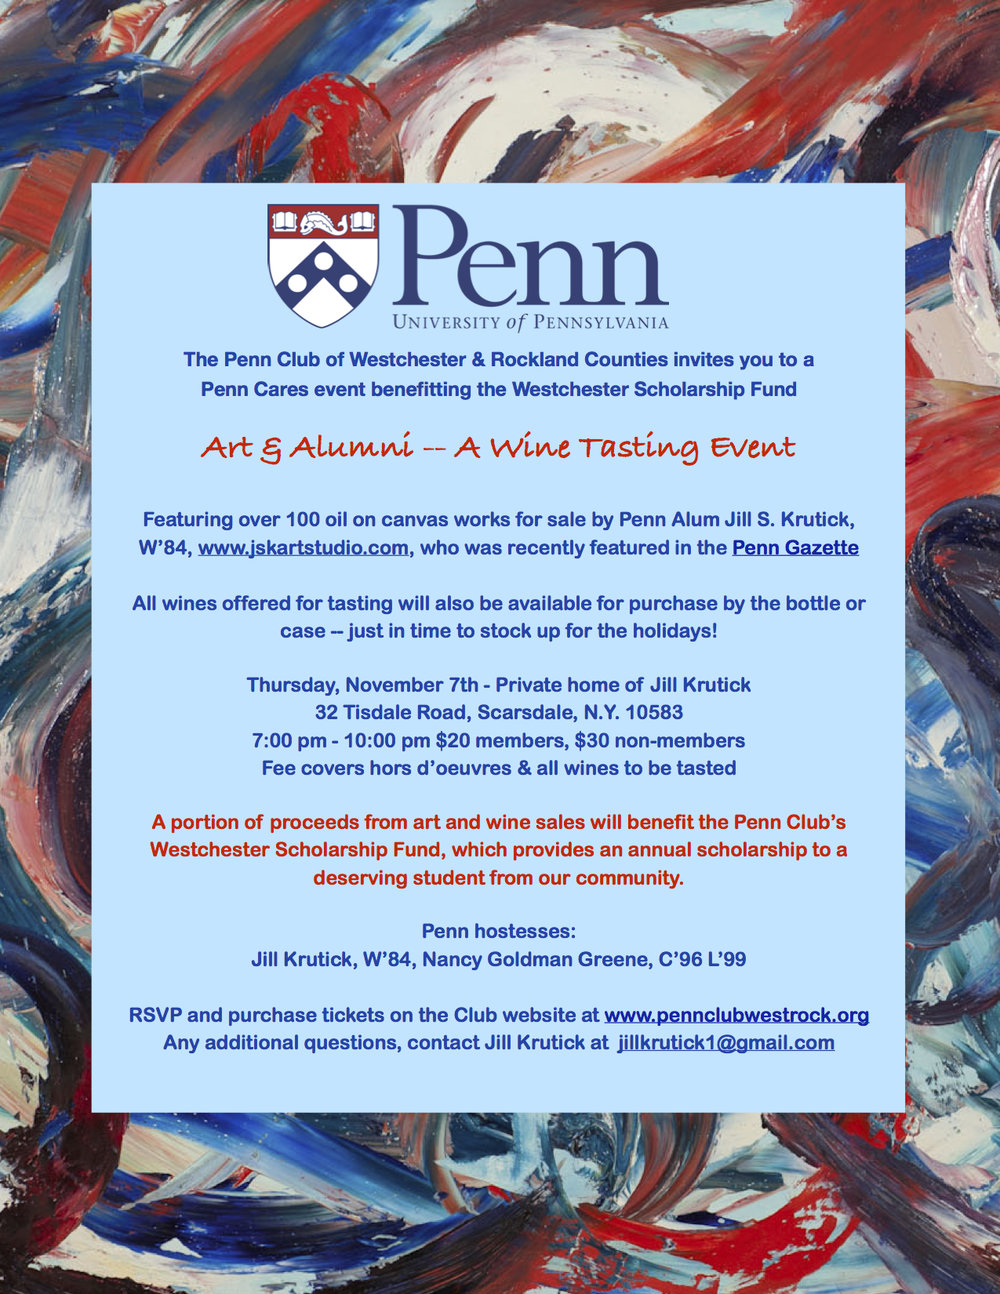 Invitation to University of Pennsylvania fundraising event.